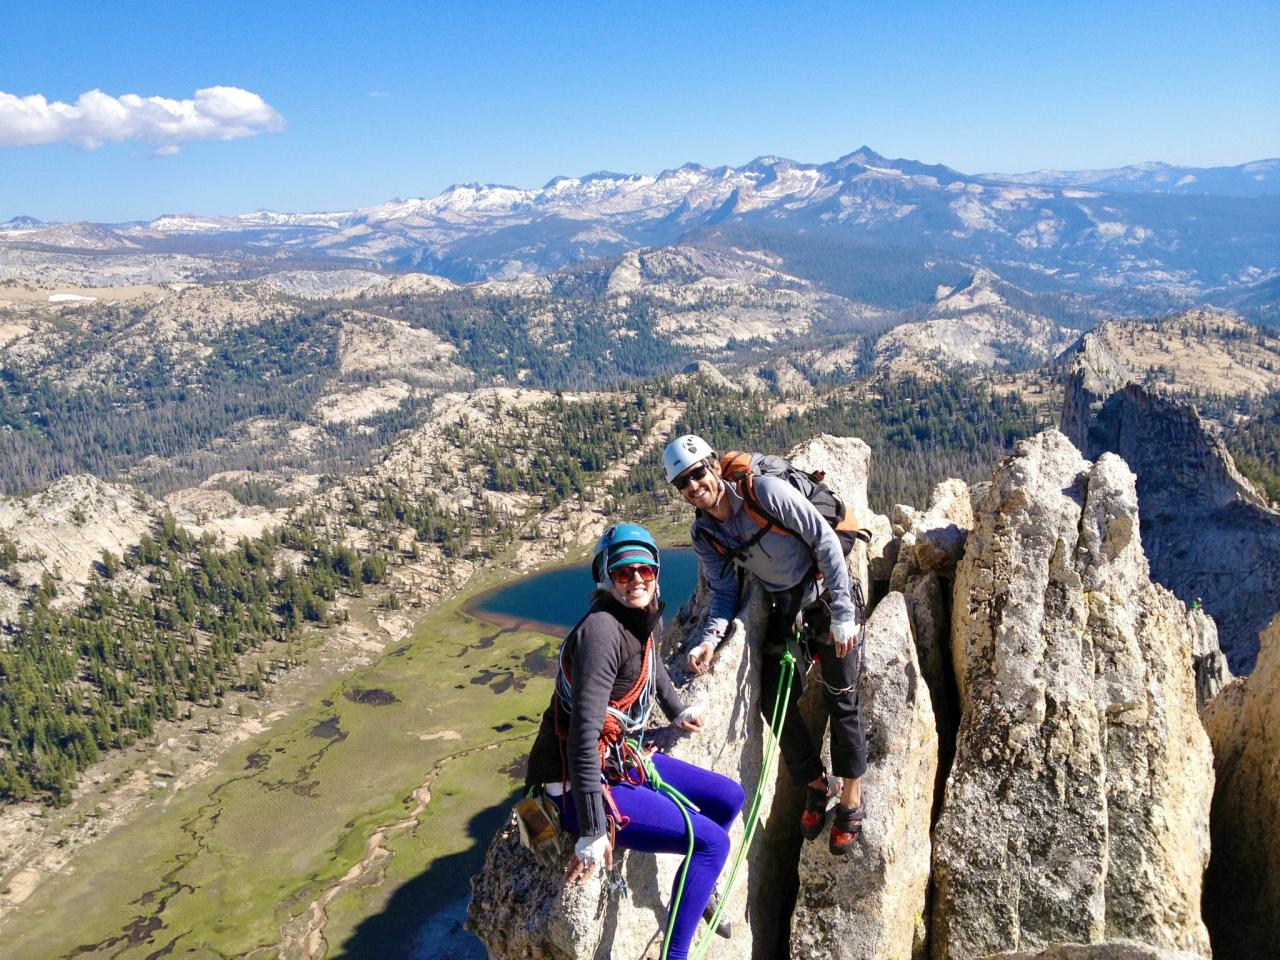 A picture from Tuolumne Meadows  by Aicacia Young